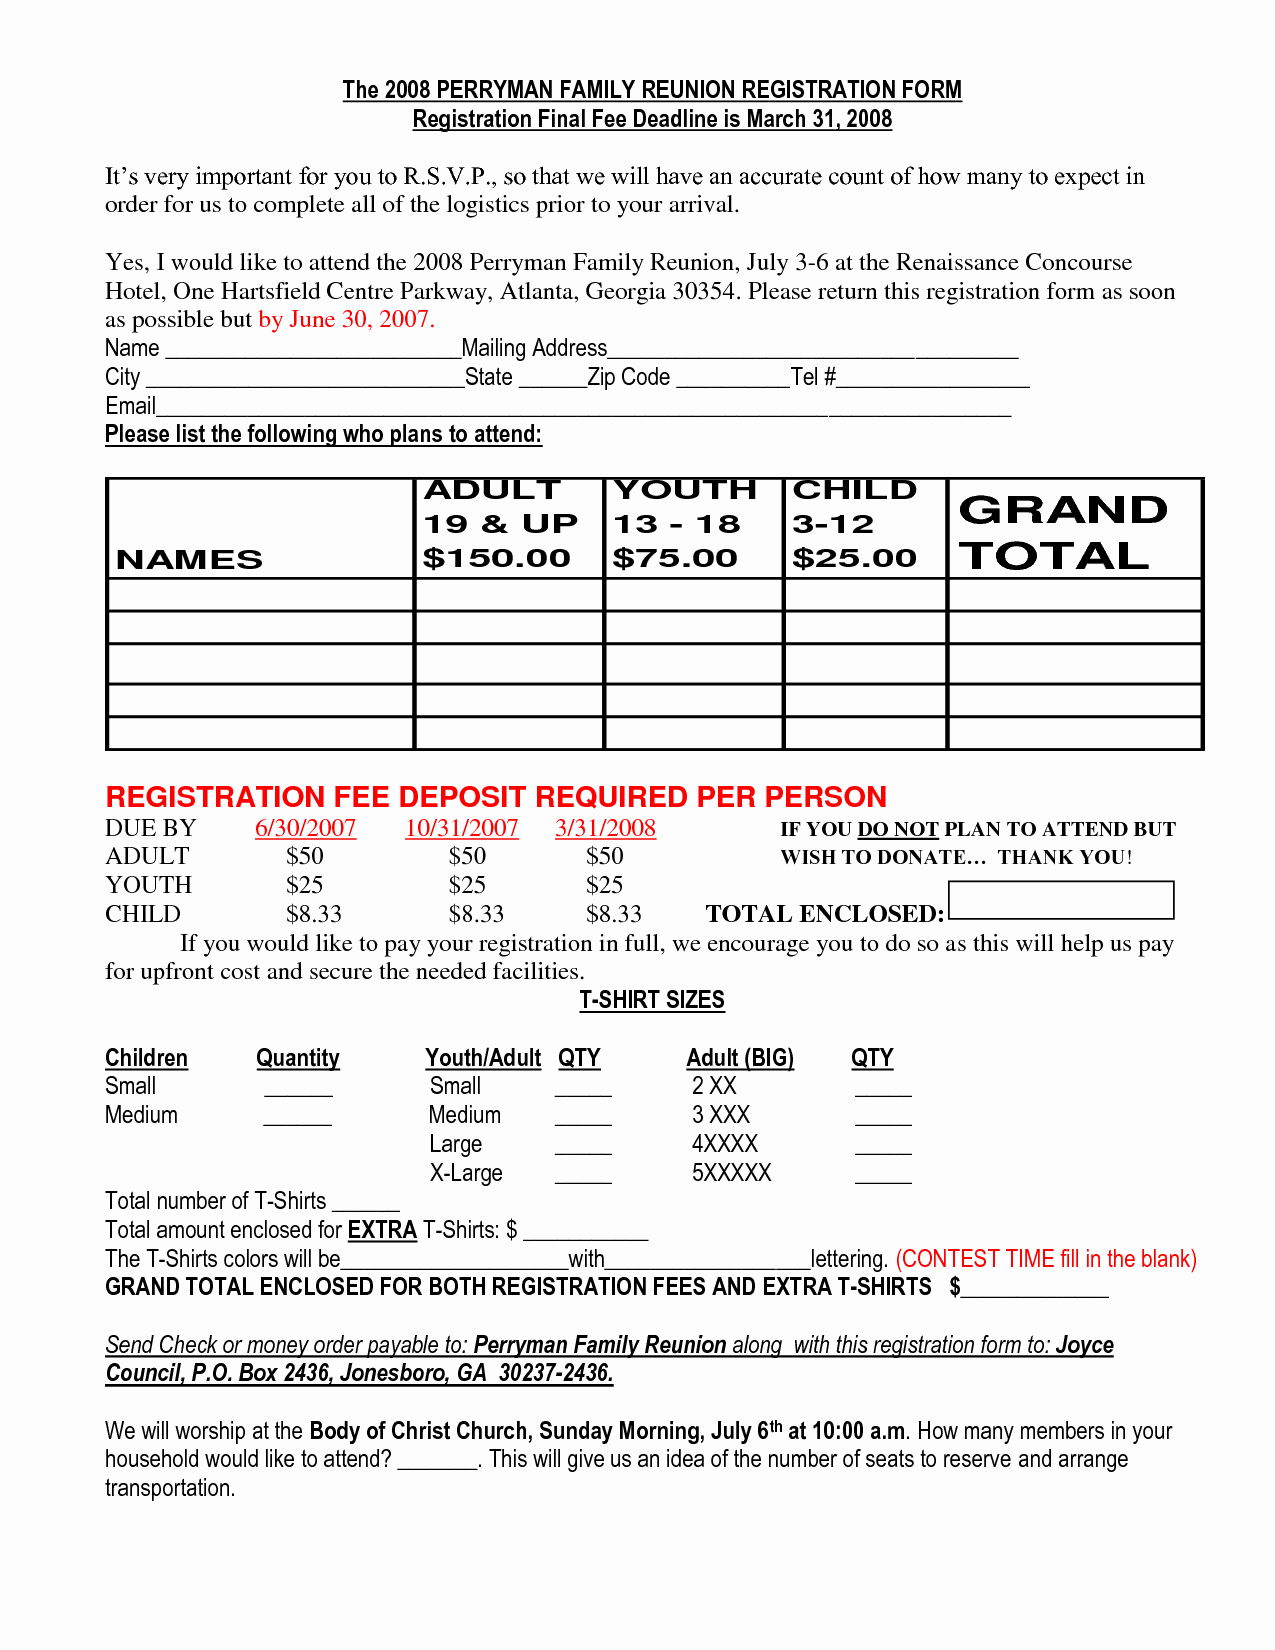 Family Reunion Letter Template Lovely Family Reunion Registration Packet